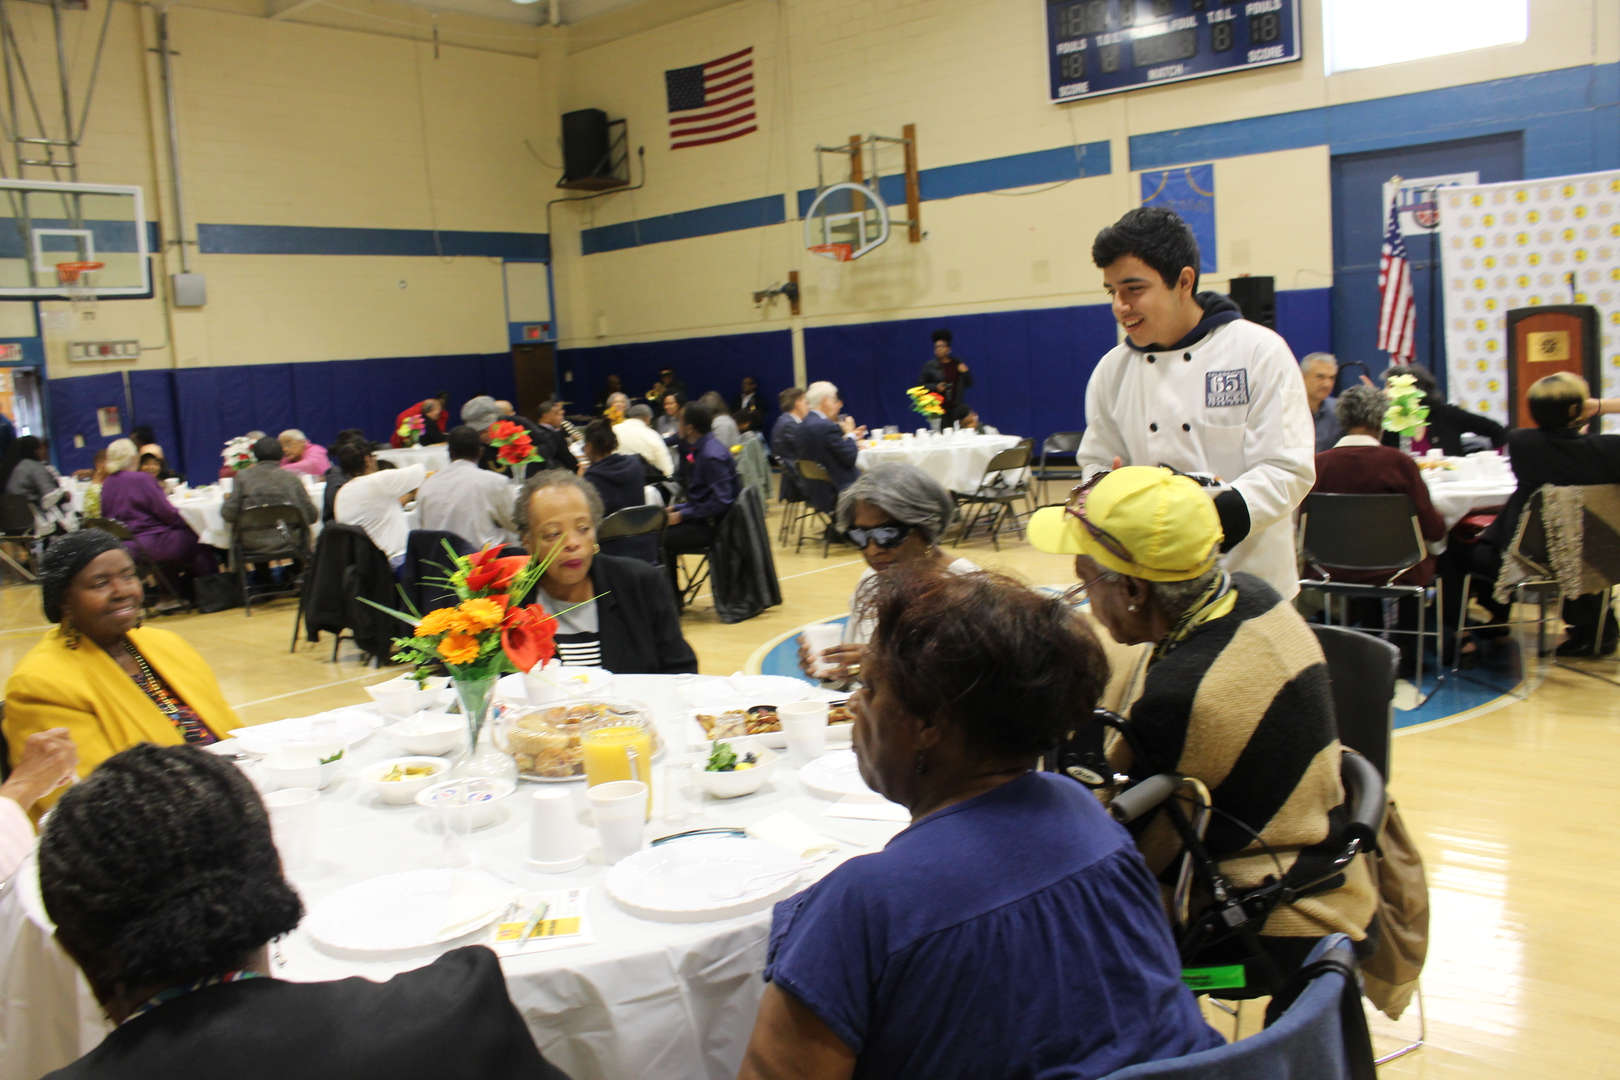 Student serves breakfast to crowd at community breakfast event